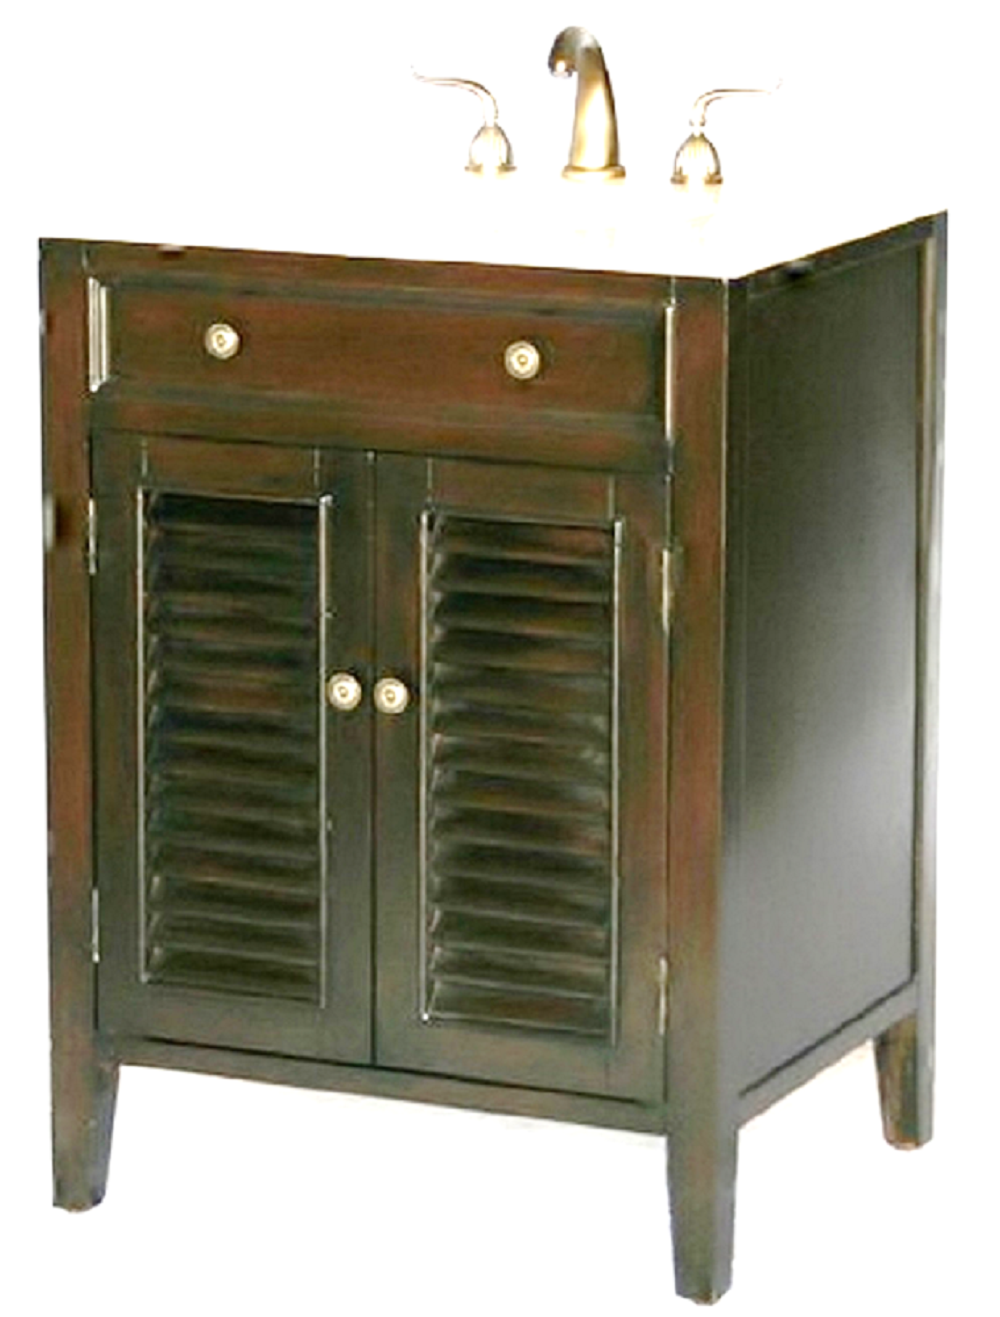 26 inch Bathroom Vanity Louvered Shutter Doors Style ...